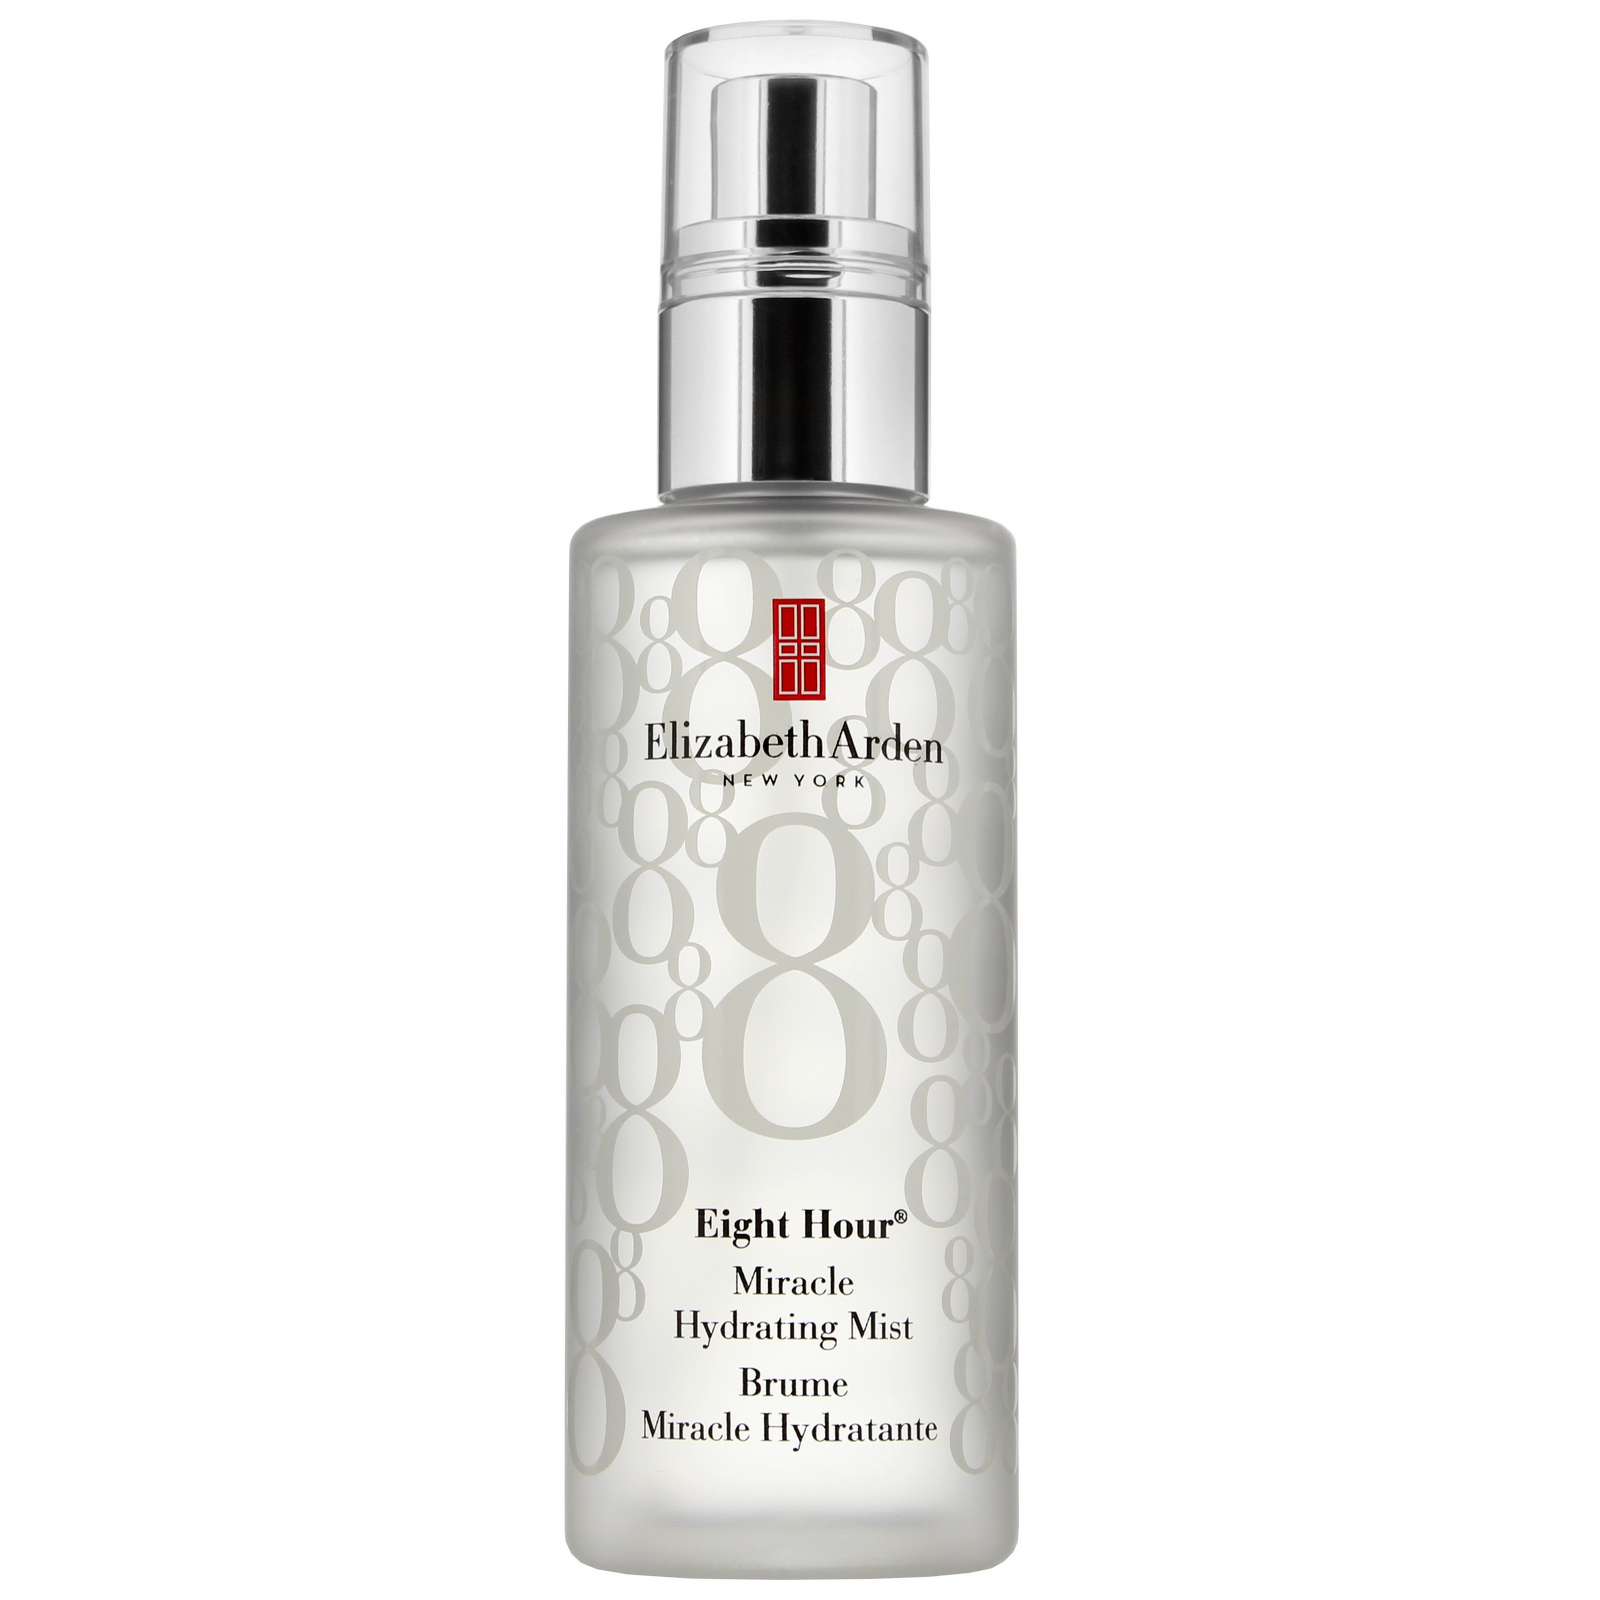 Elizabeth Arden Moisturisers Eight Hour Miracle Hydrating Mist 100ml / 3.4 fl.oz.